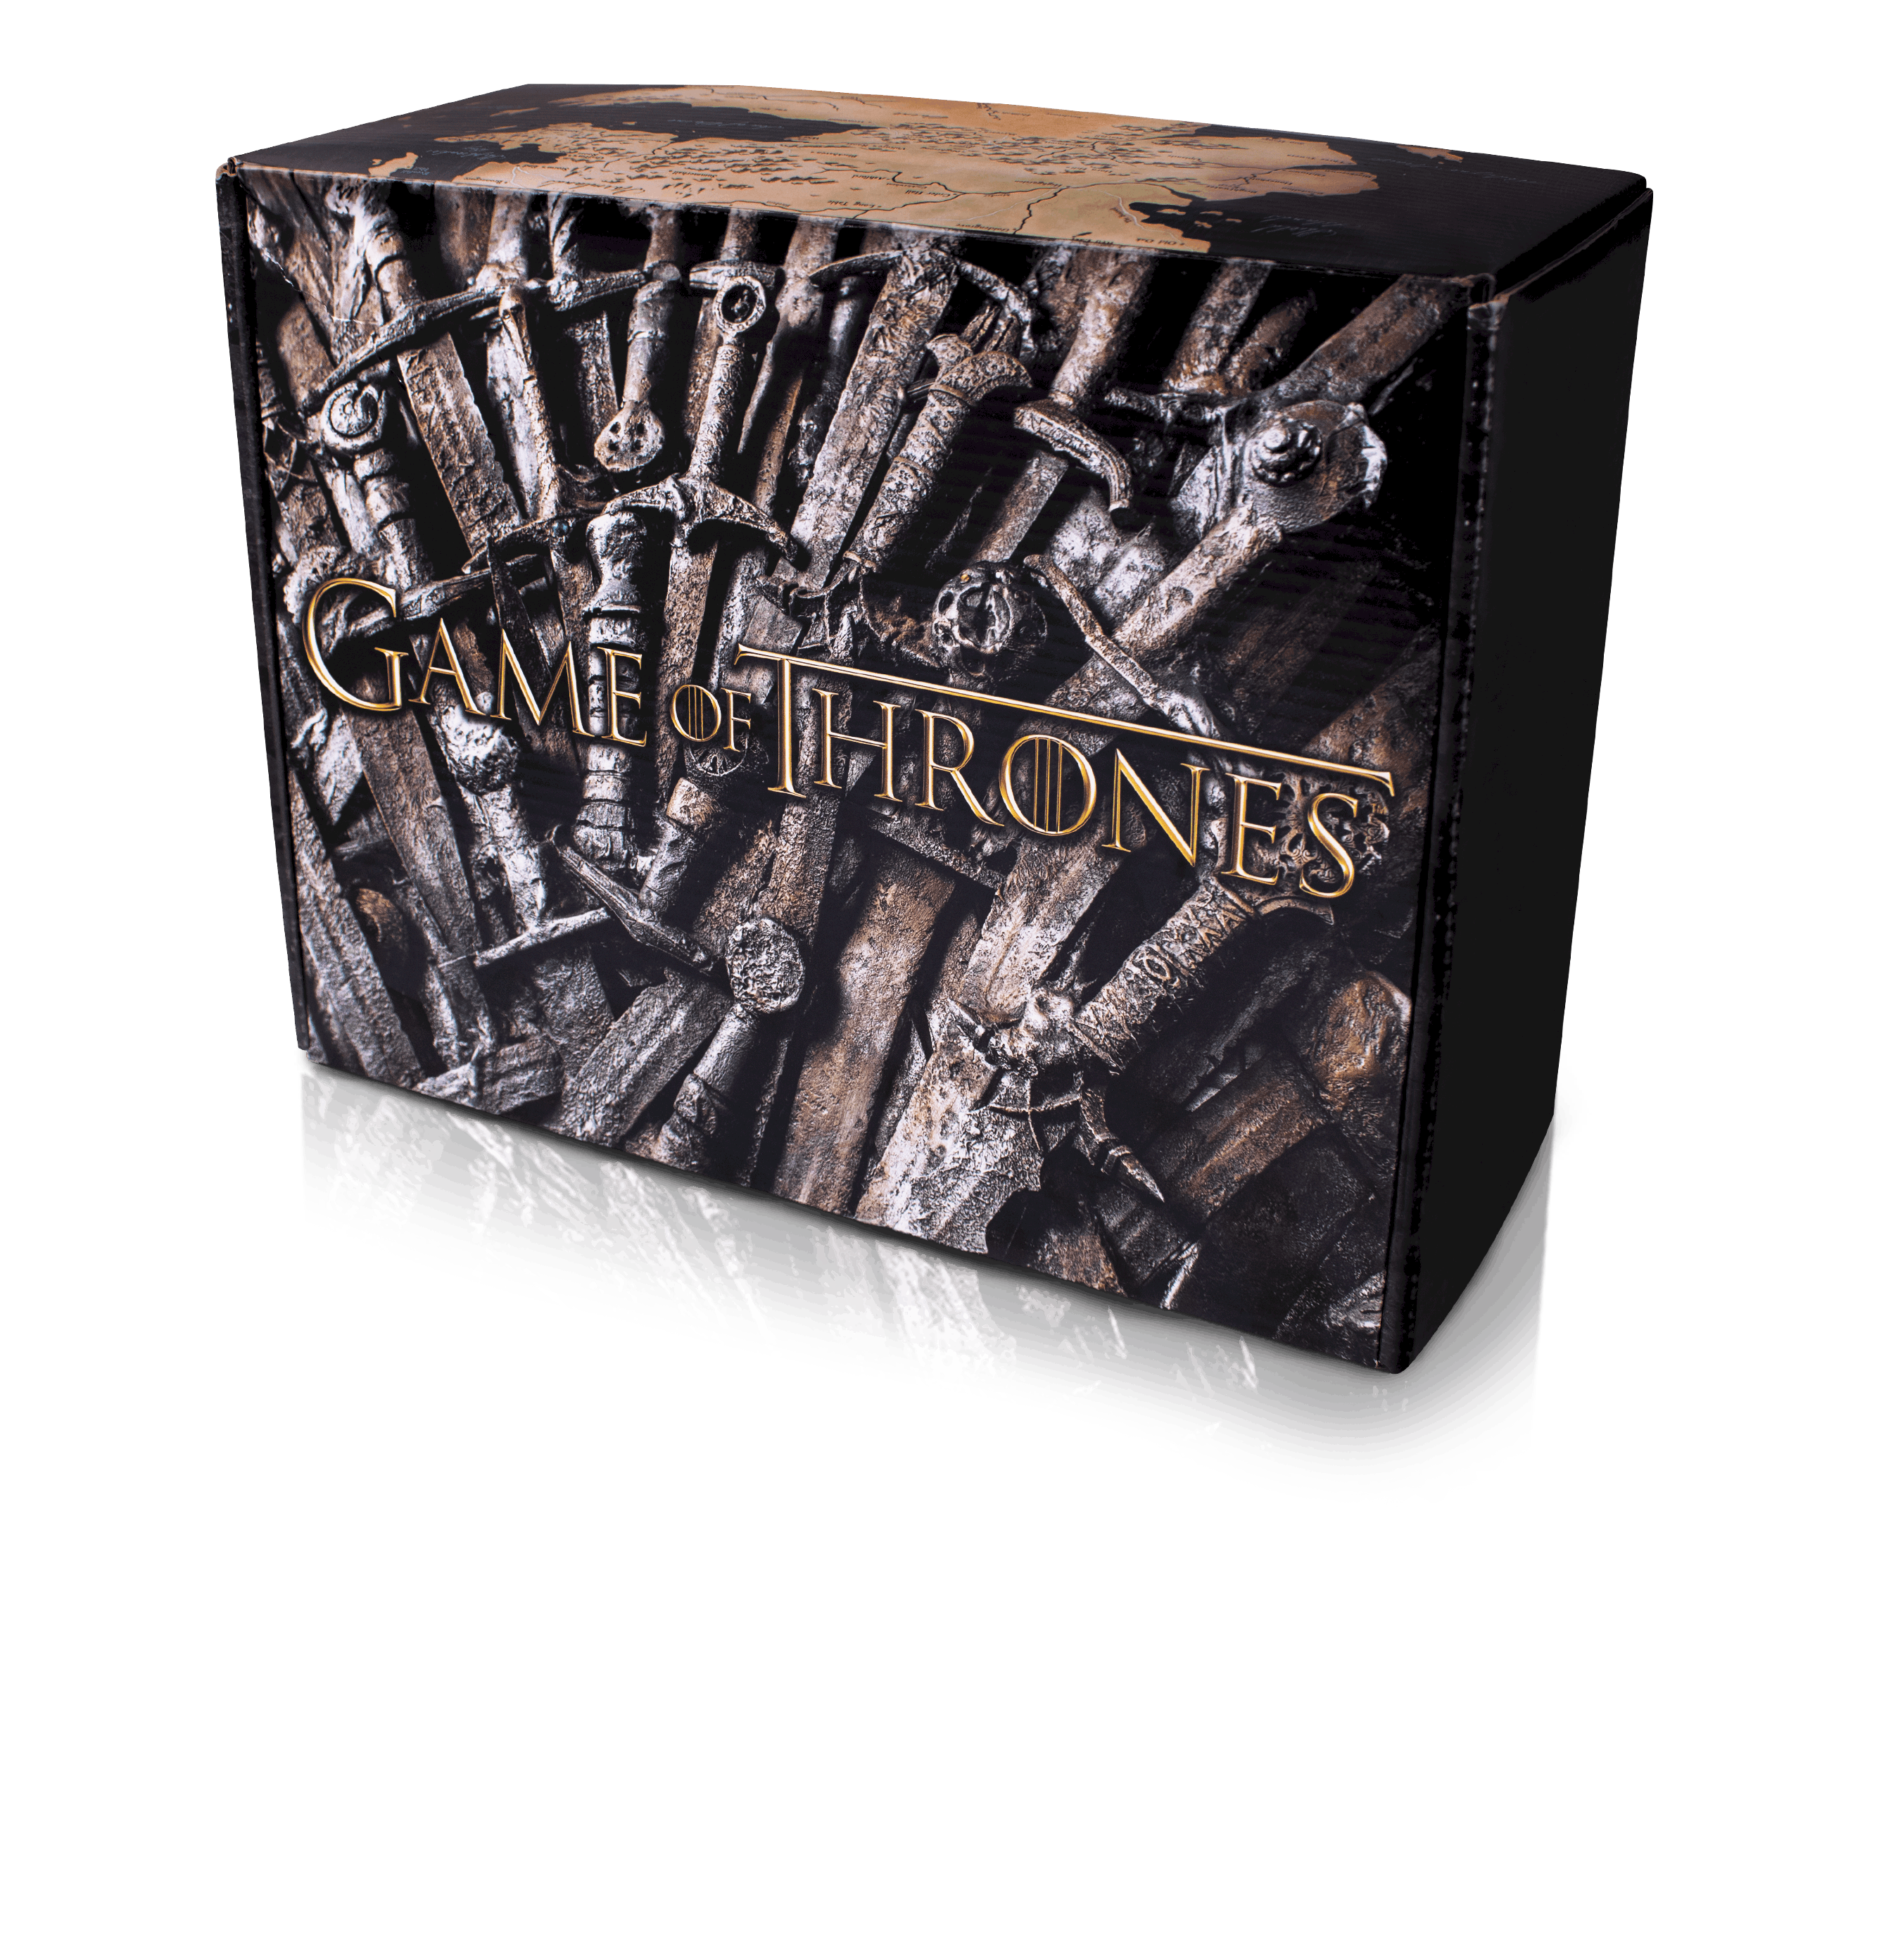 The Game of Thrones Box Spring 2019 FULL Spoilers!